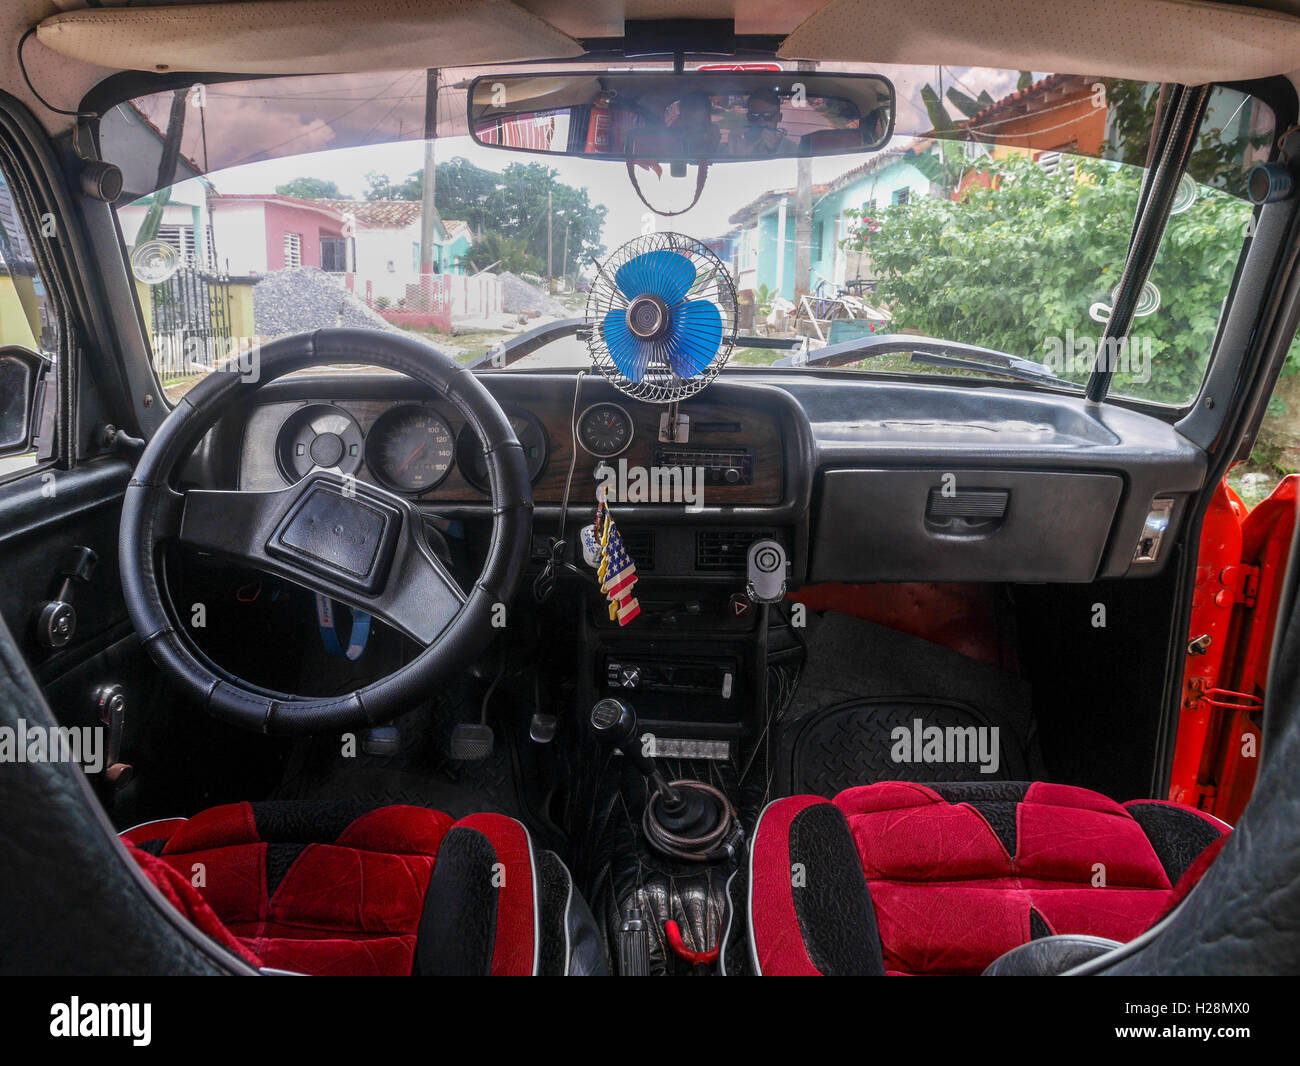 Inside of a taxi car - Stock Image